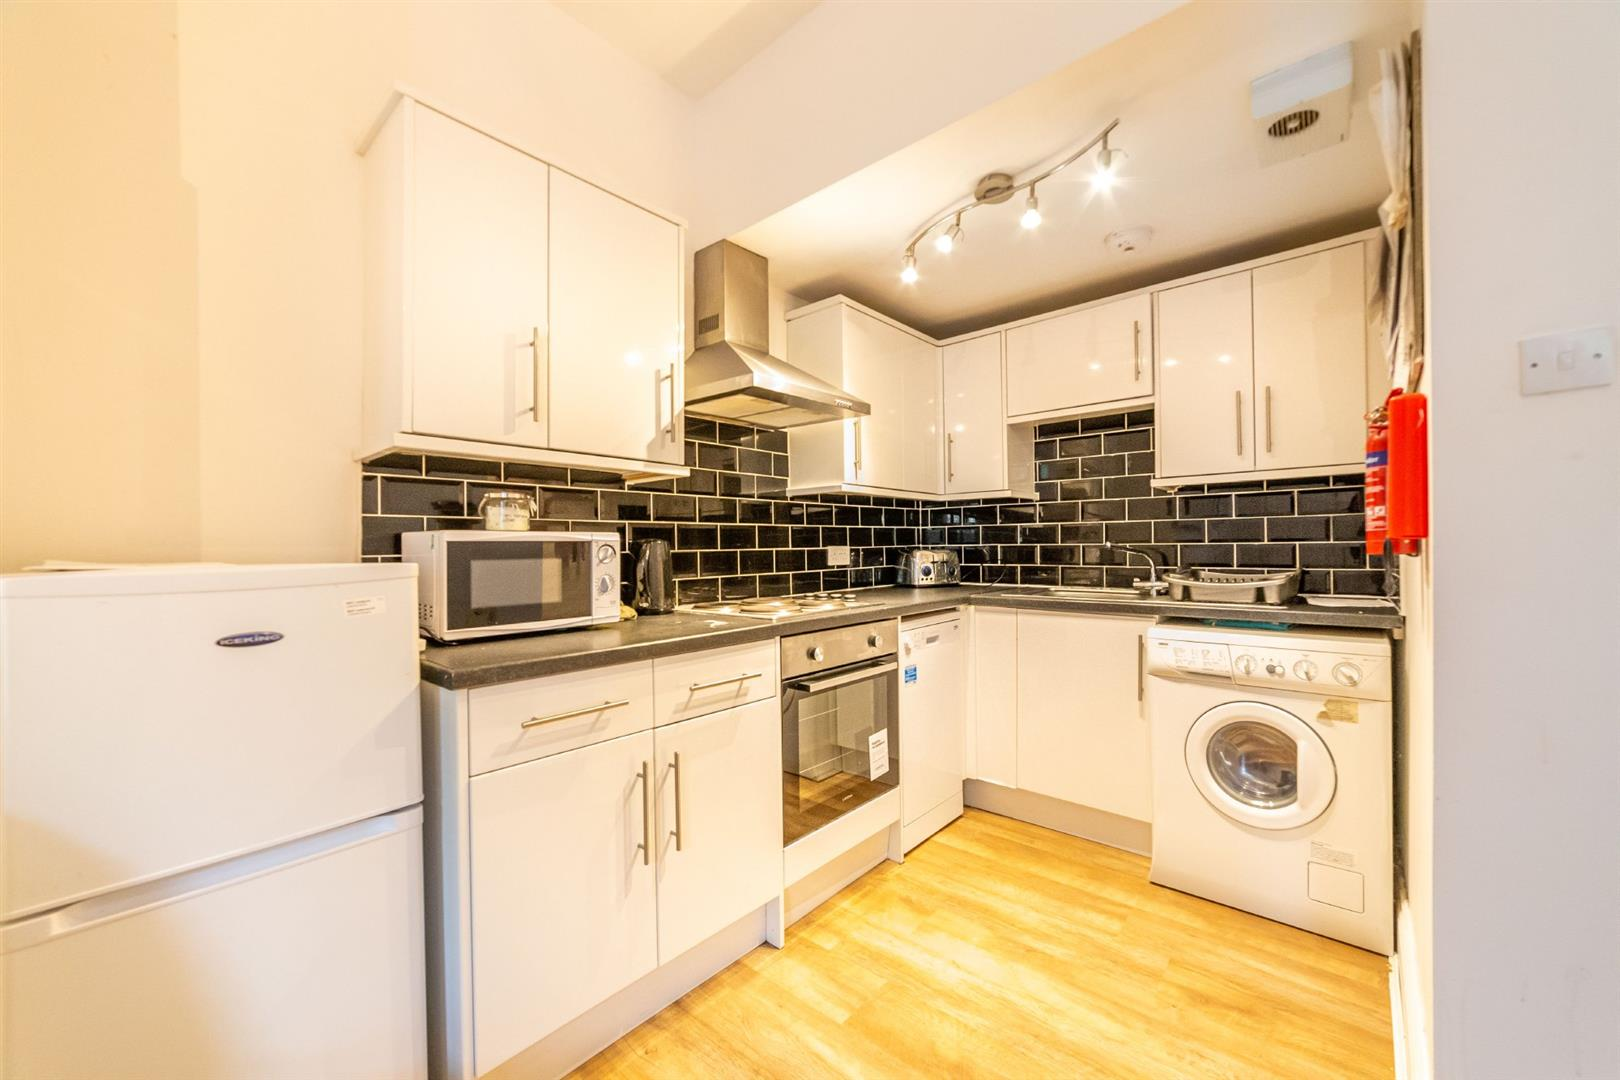 3 bed flat to rent in Newcastle Upon Tyne, NE2 1PN, NE2